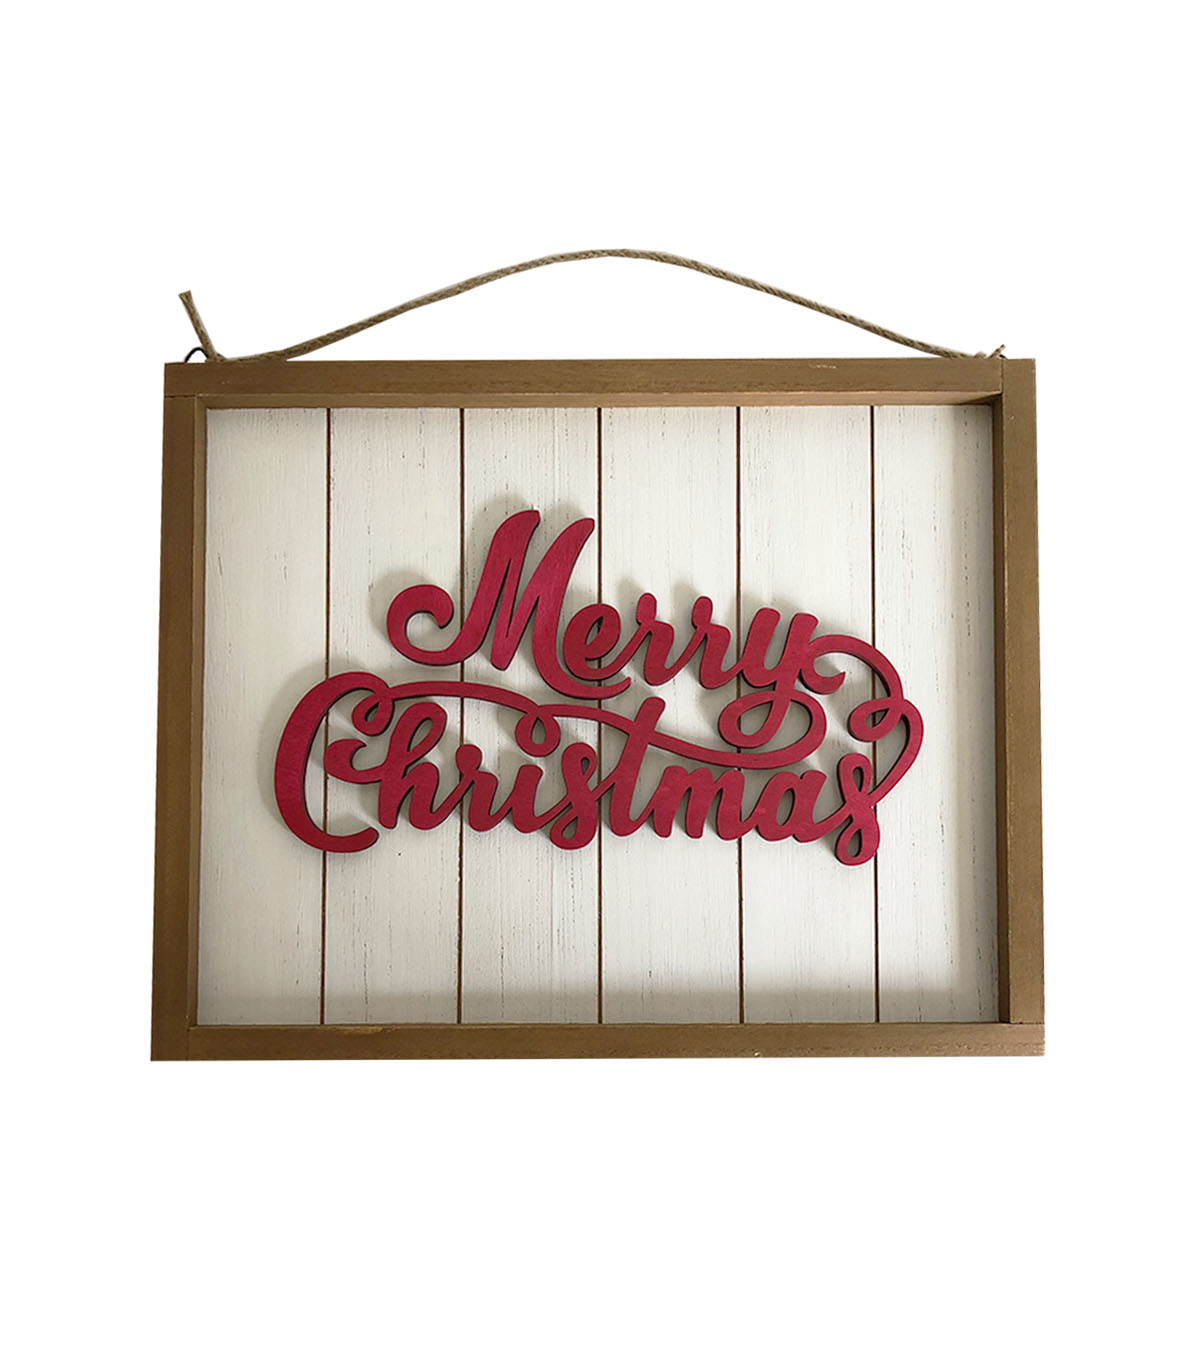 Maker\u0027s Holiday Christmas Wall Decor-Red Merry Christmas on White